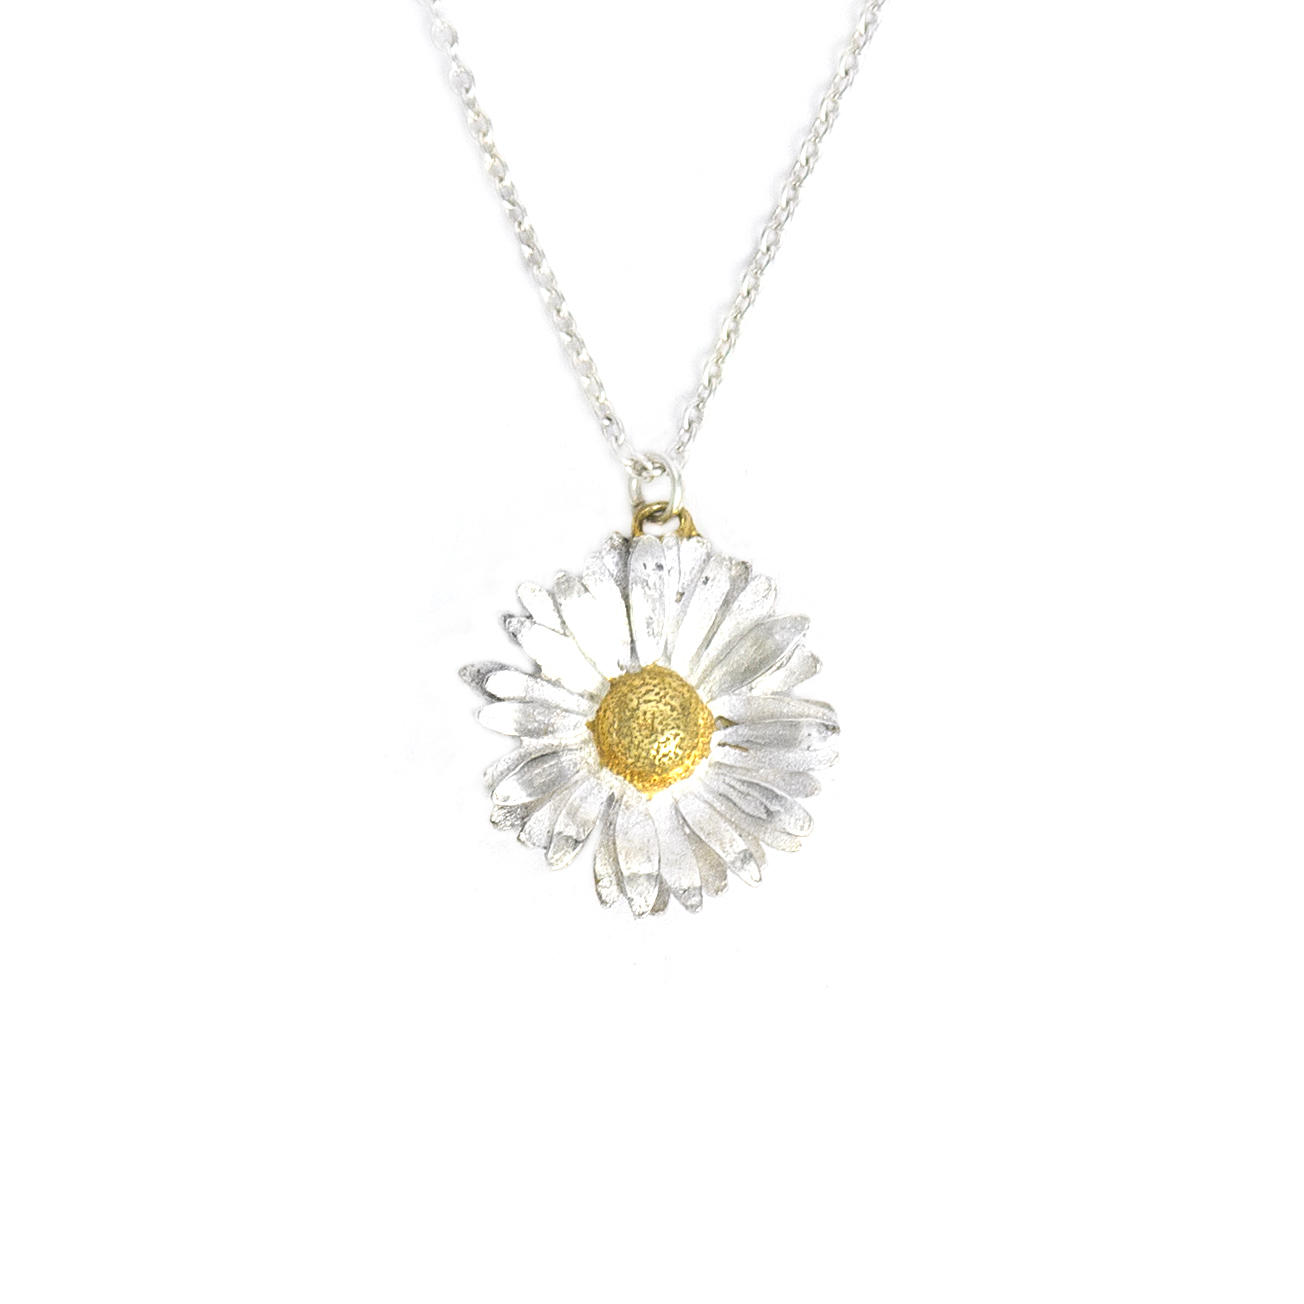 Solid silver and gold plated big daisy necklace £135 (available in store only)